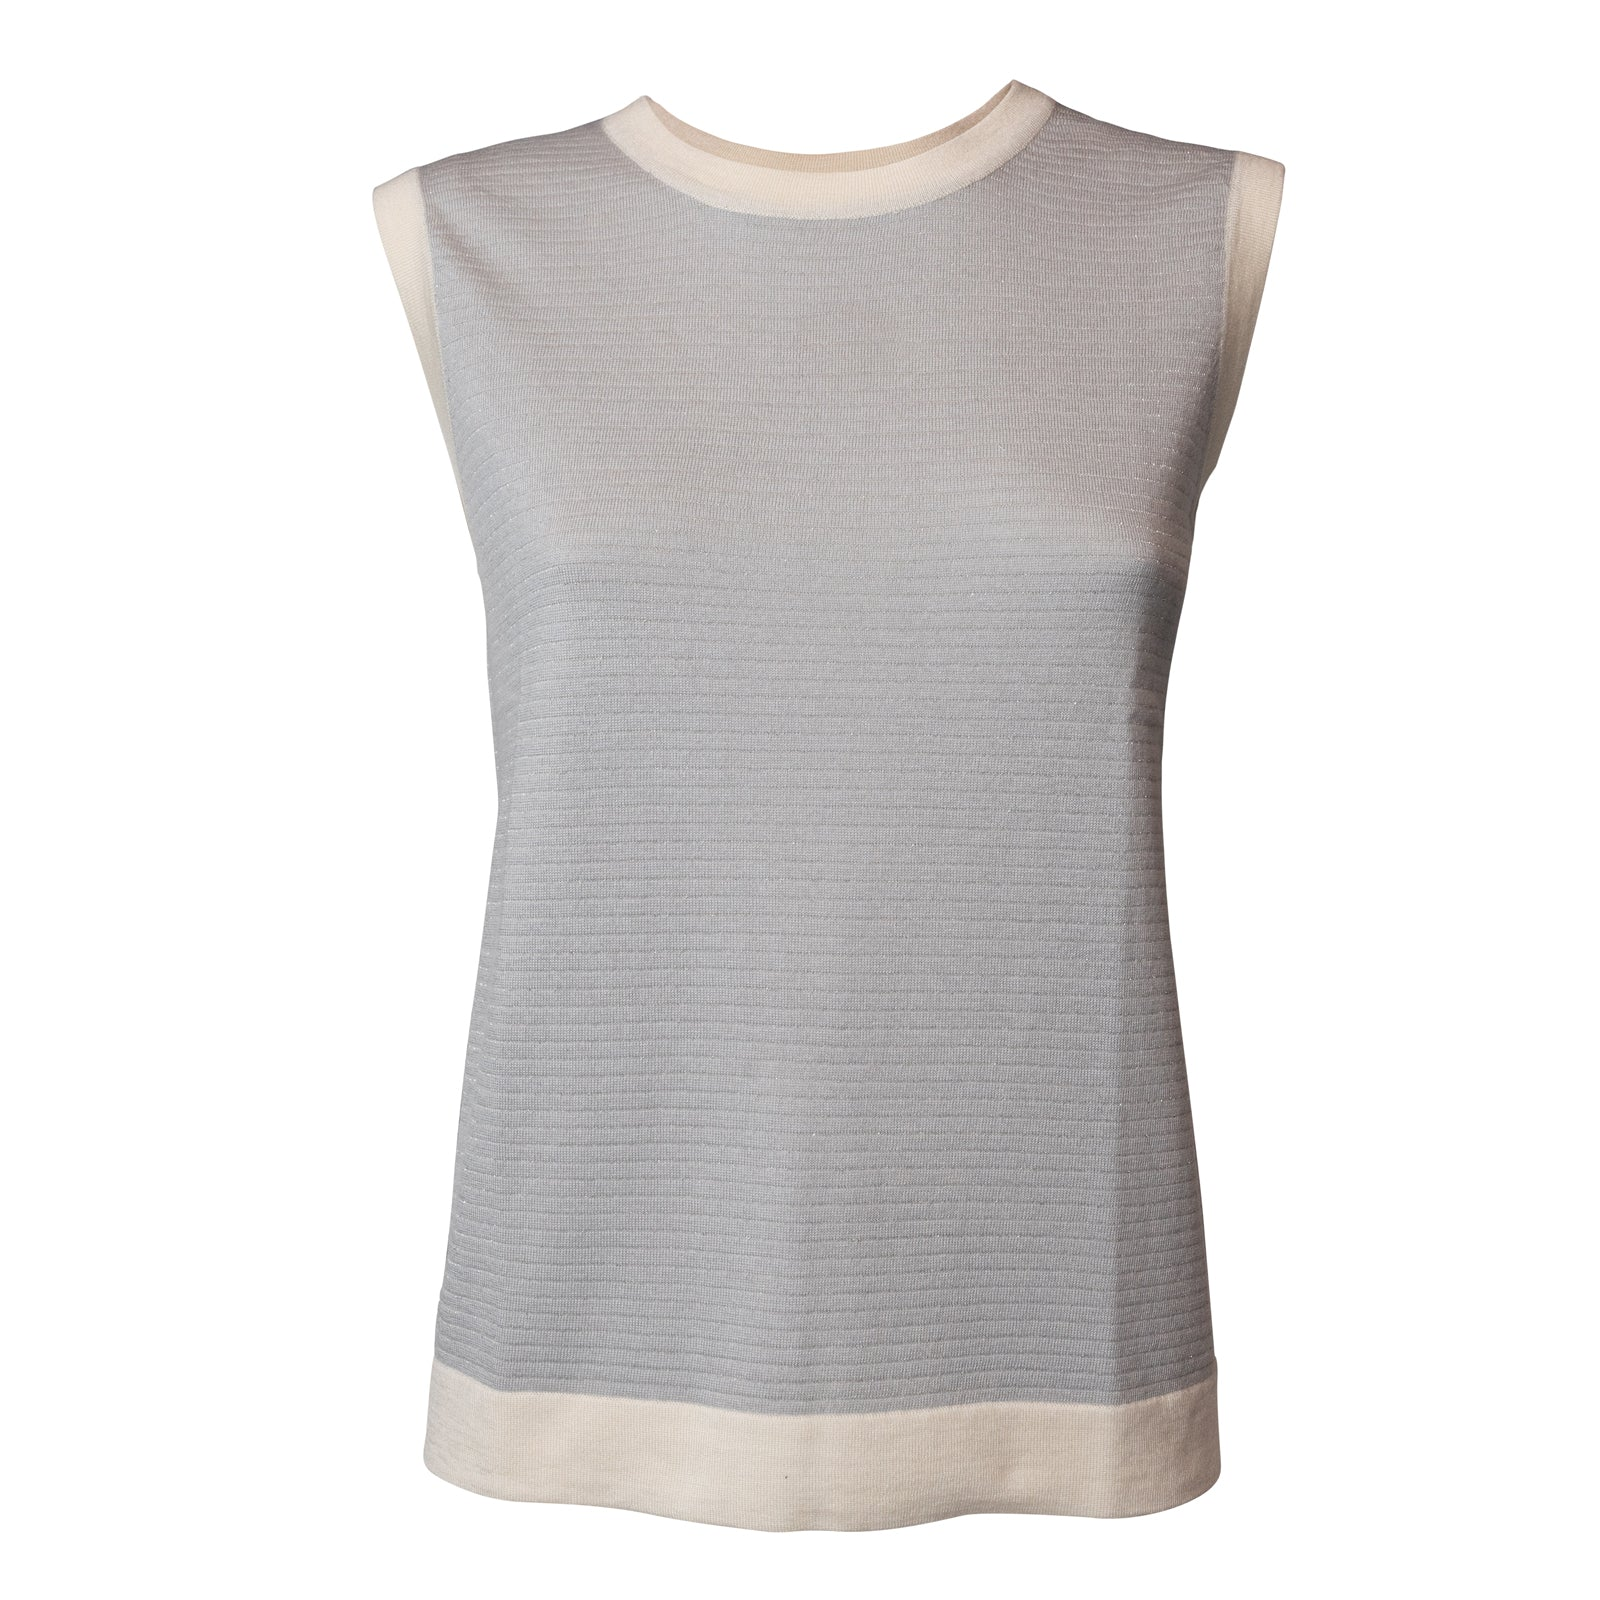 Women's Silk Top In Ice With Lurex